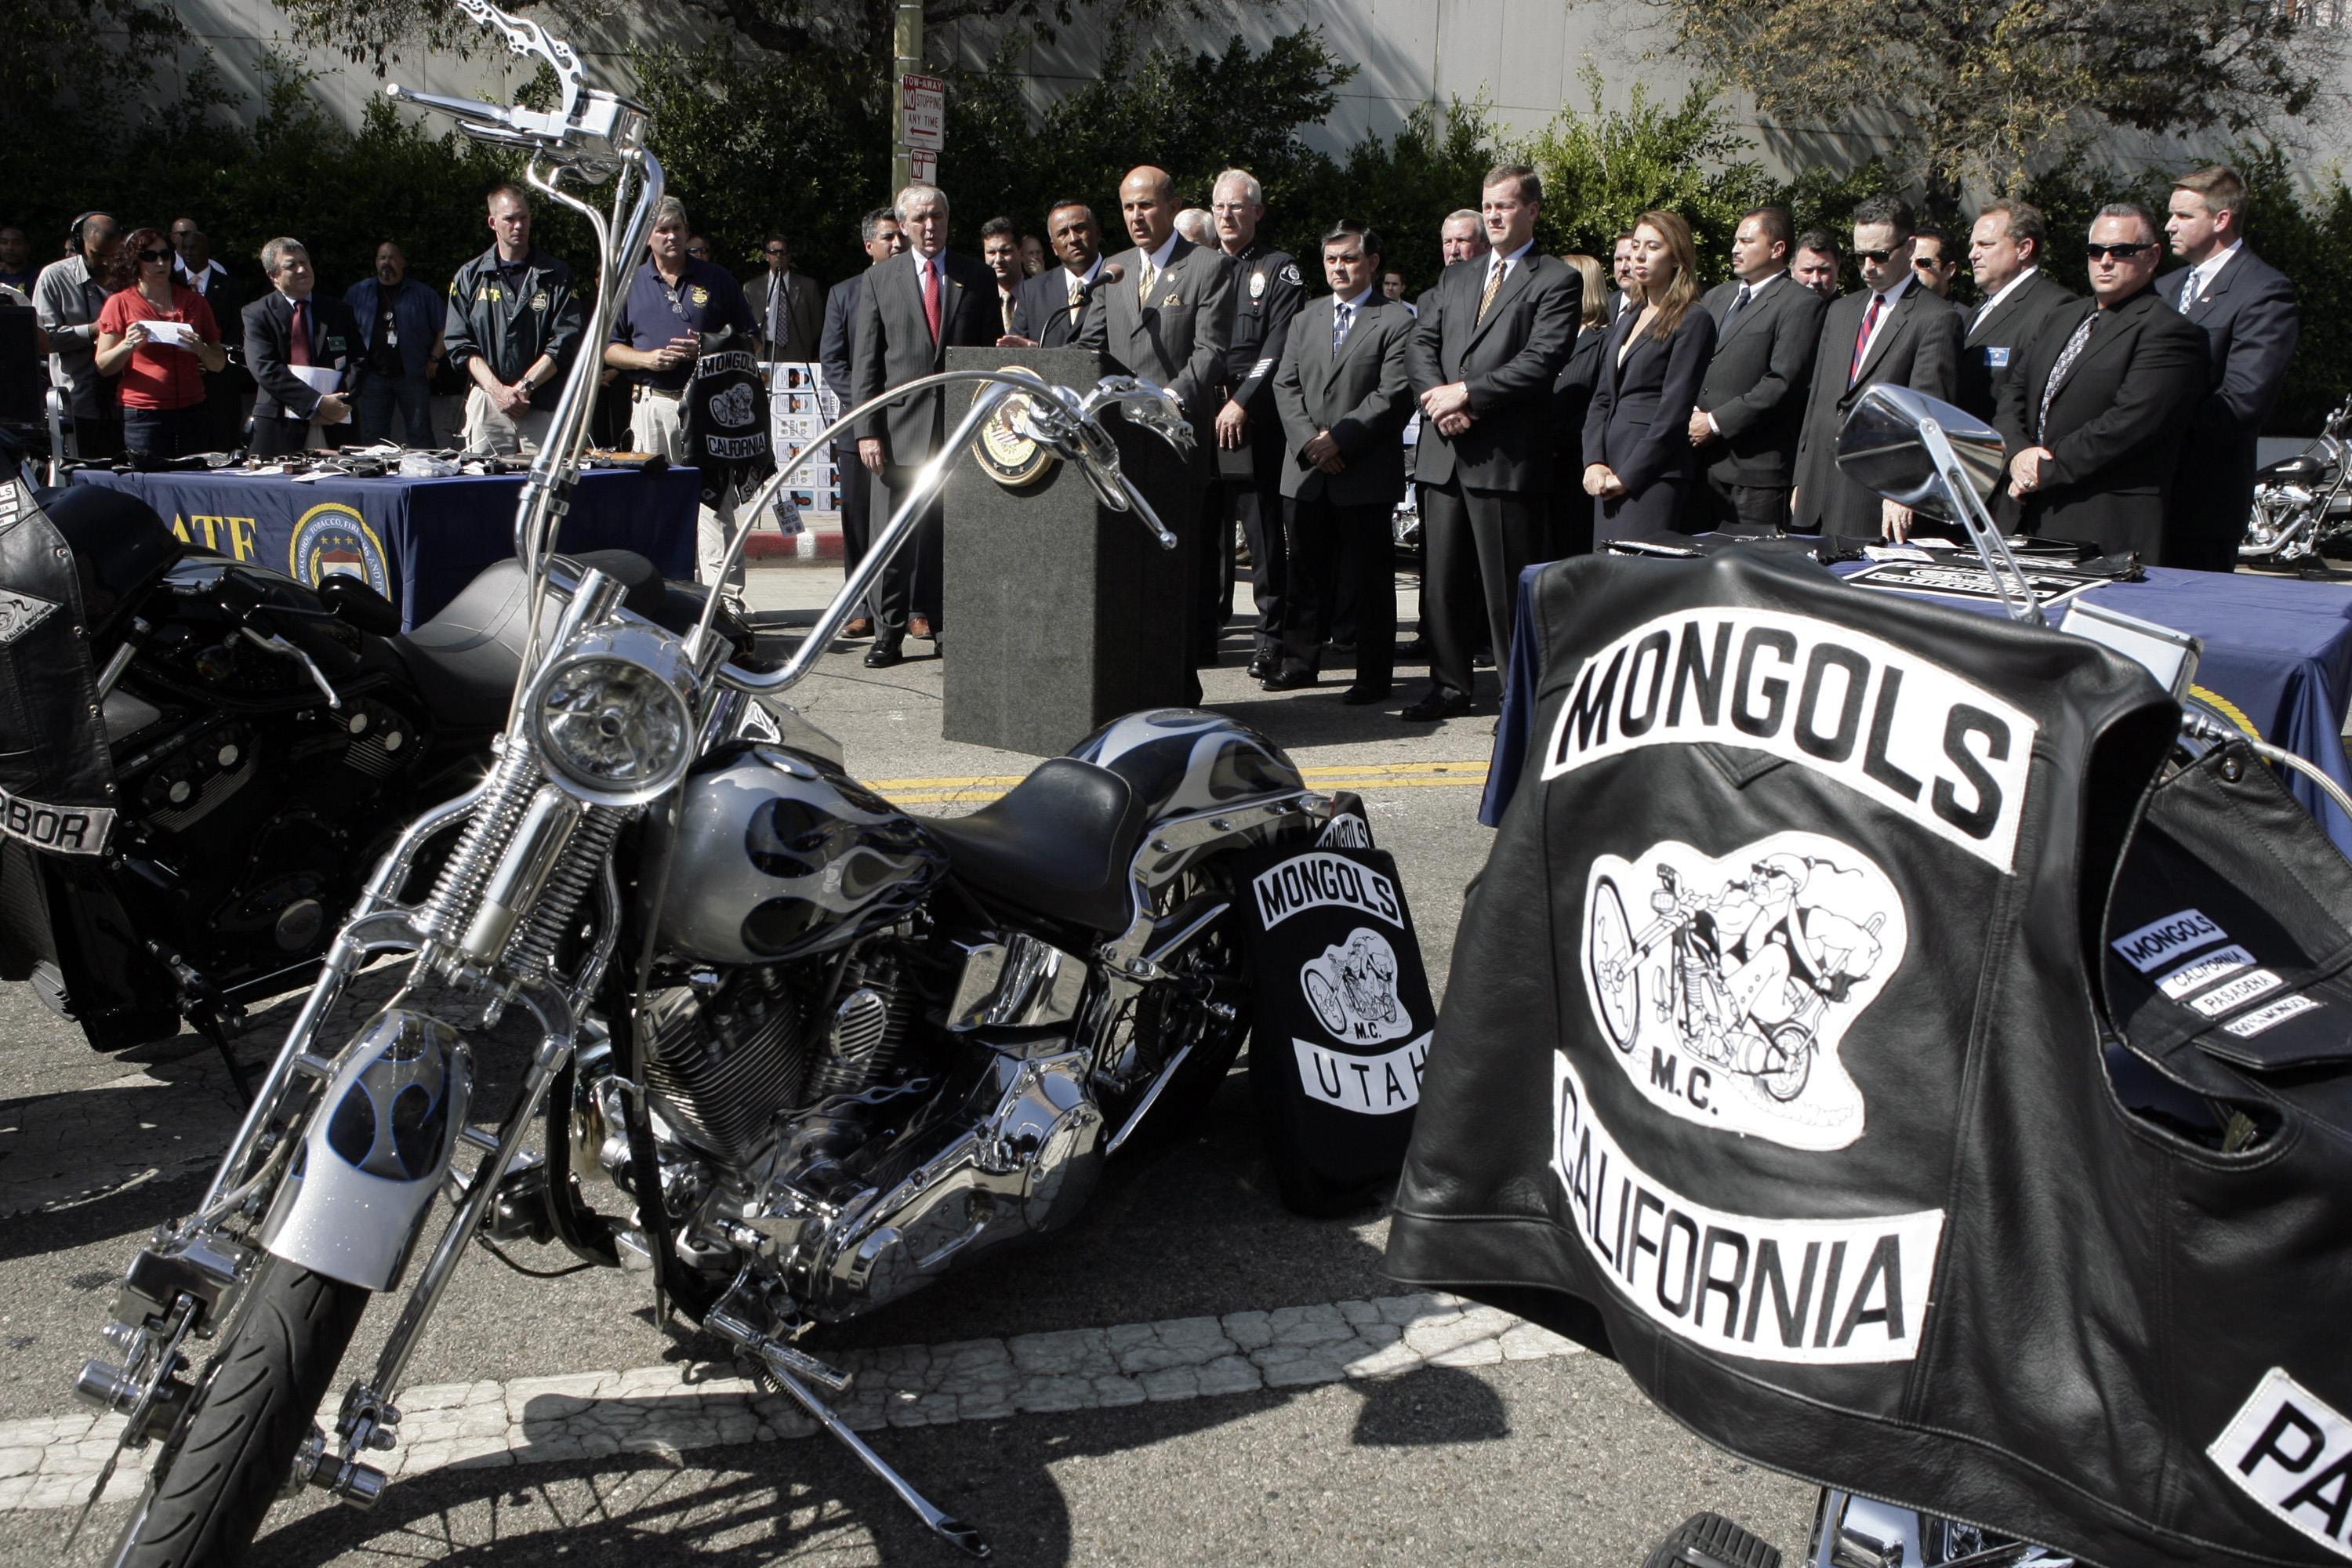 los angeles and gay leather motorcycle club